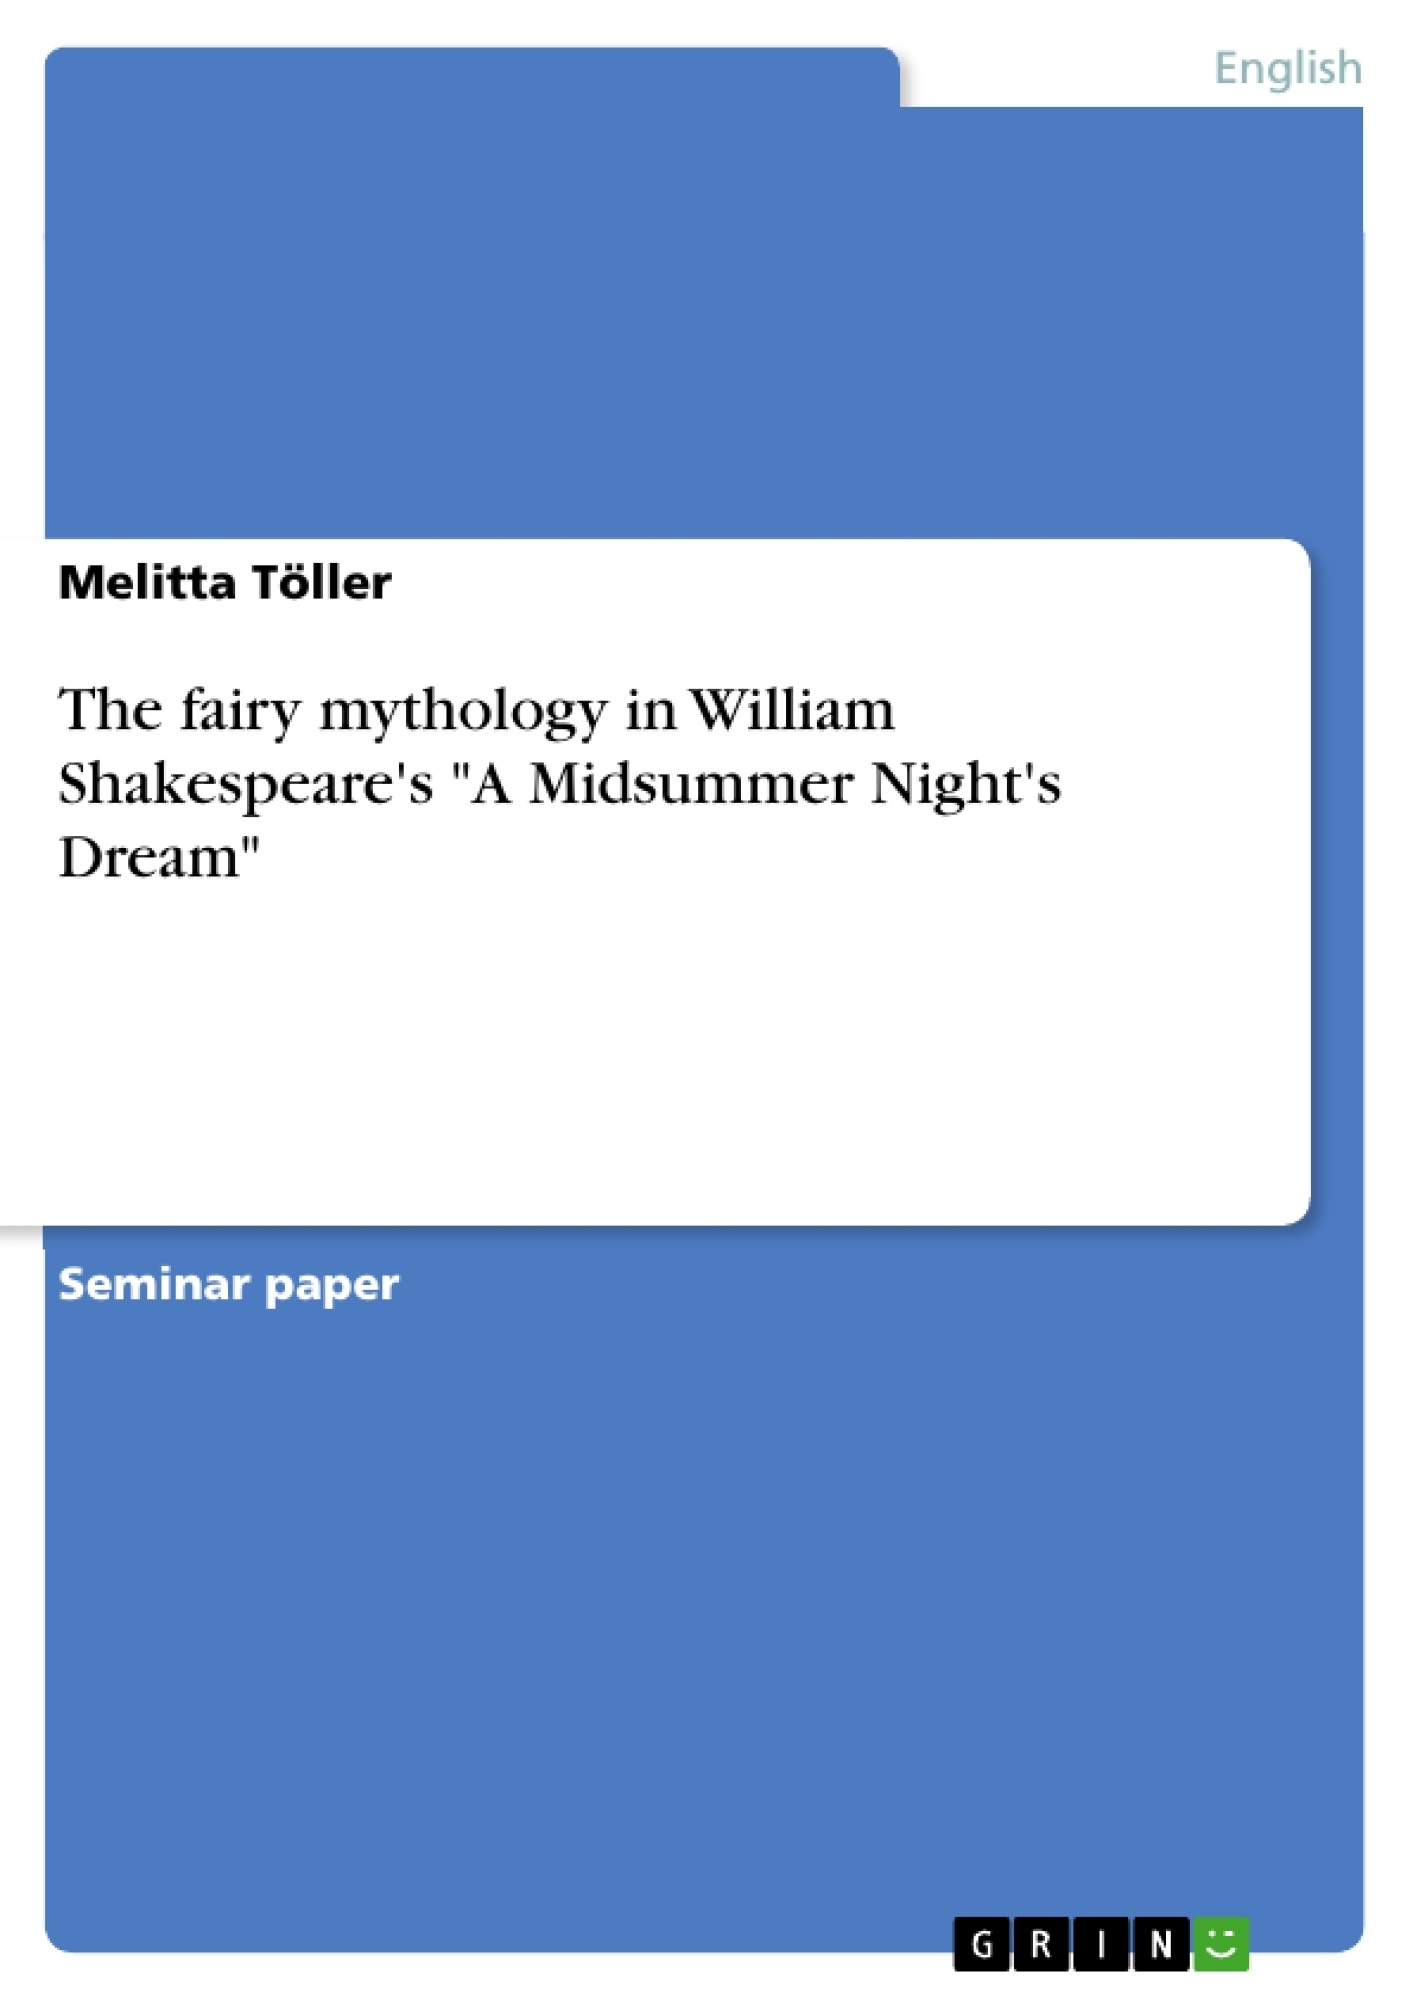 """Title: The fairy mythology in William Shakespeare's """"A Midsummer Night's Dream"""""""